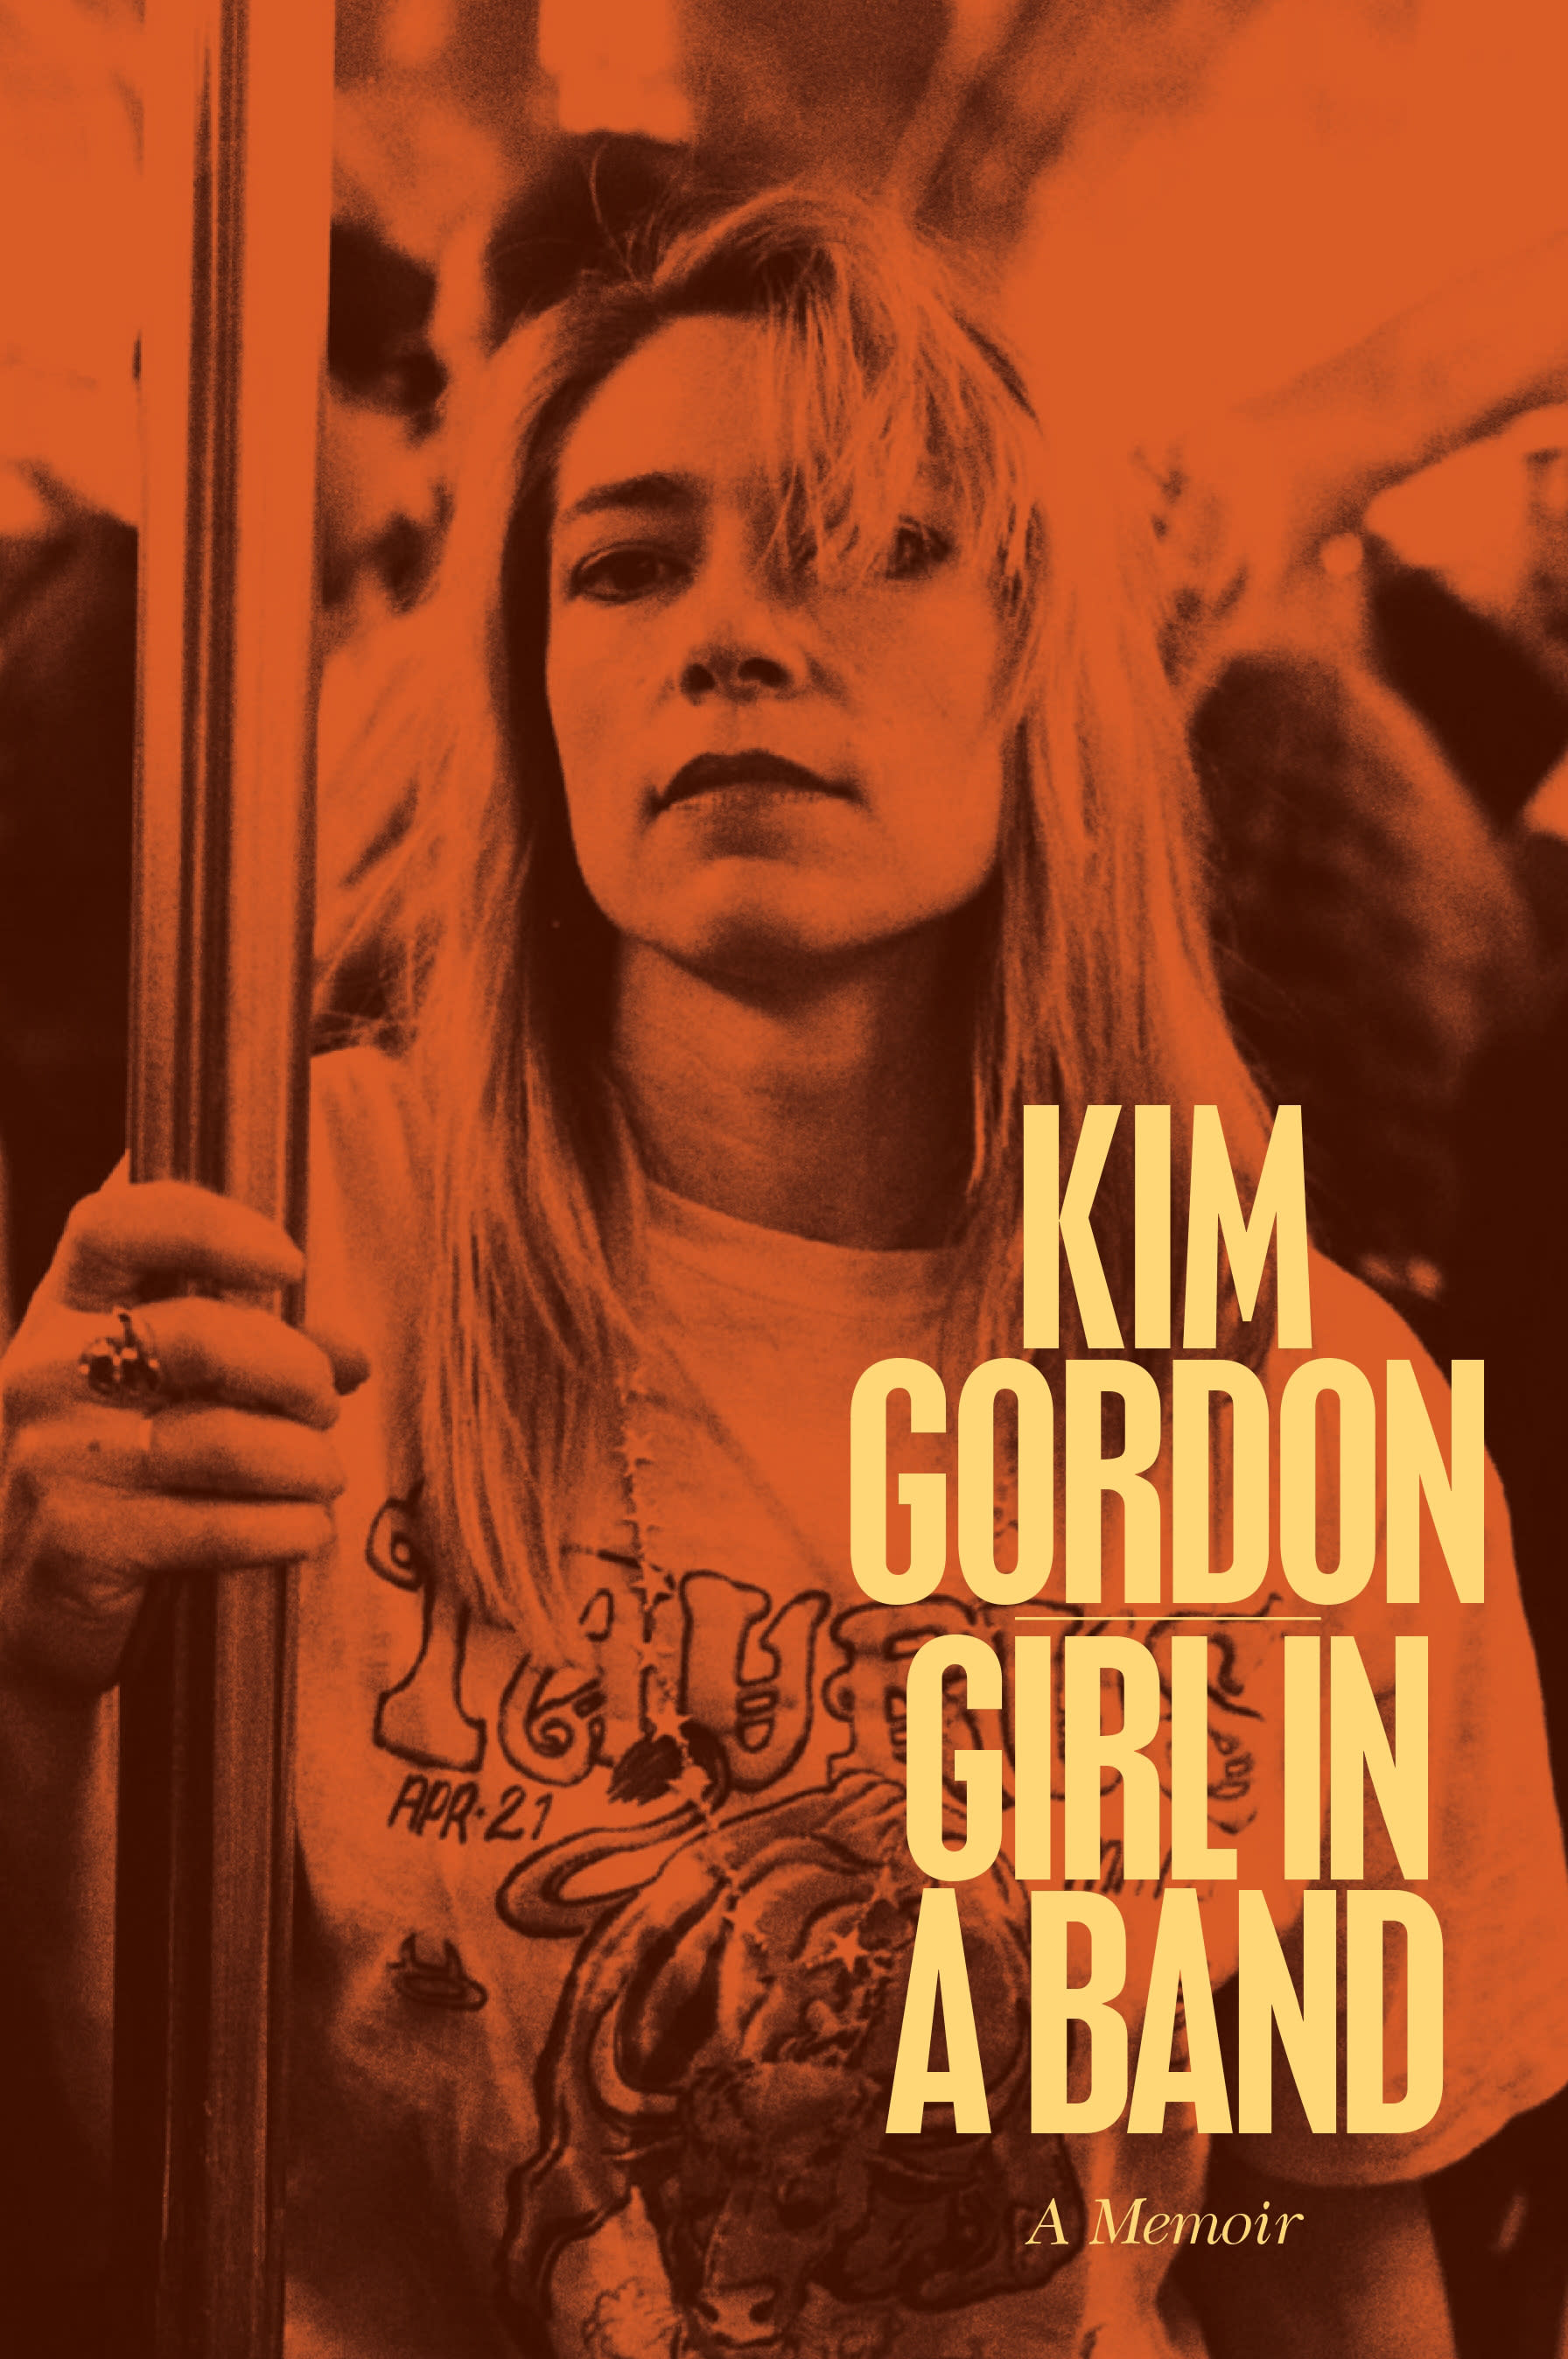 Book review: Kim Gordon is more than just a 'Girl in a Band'